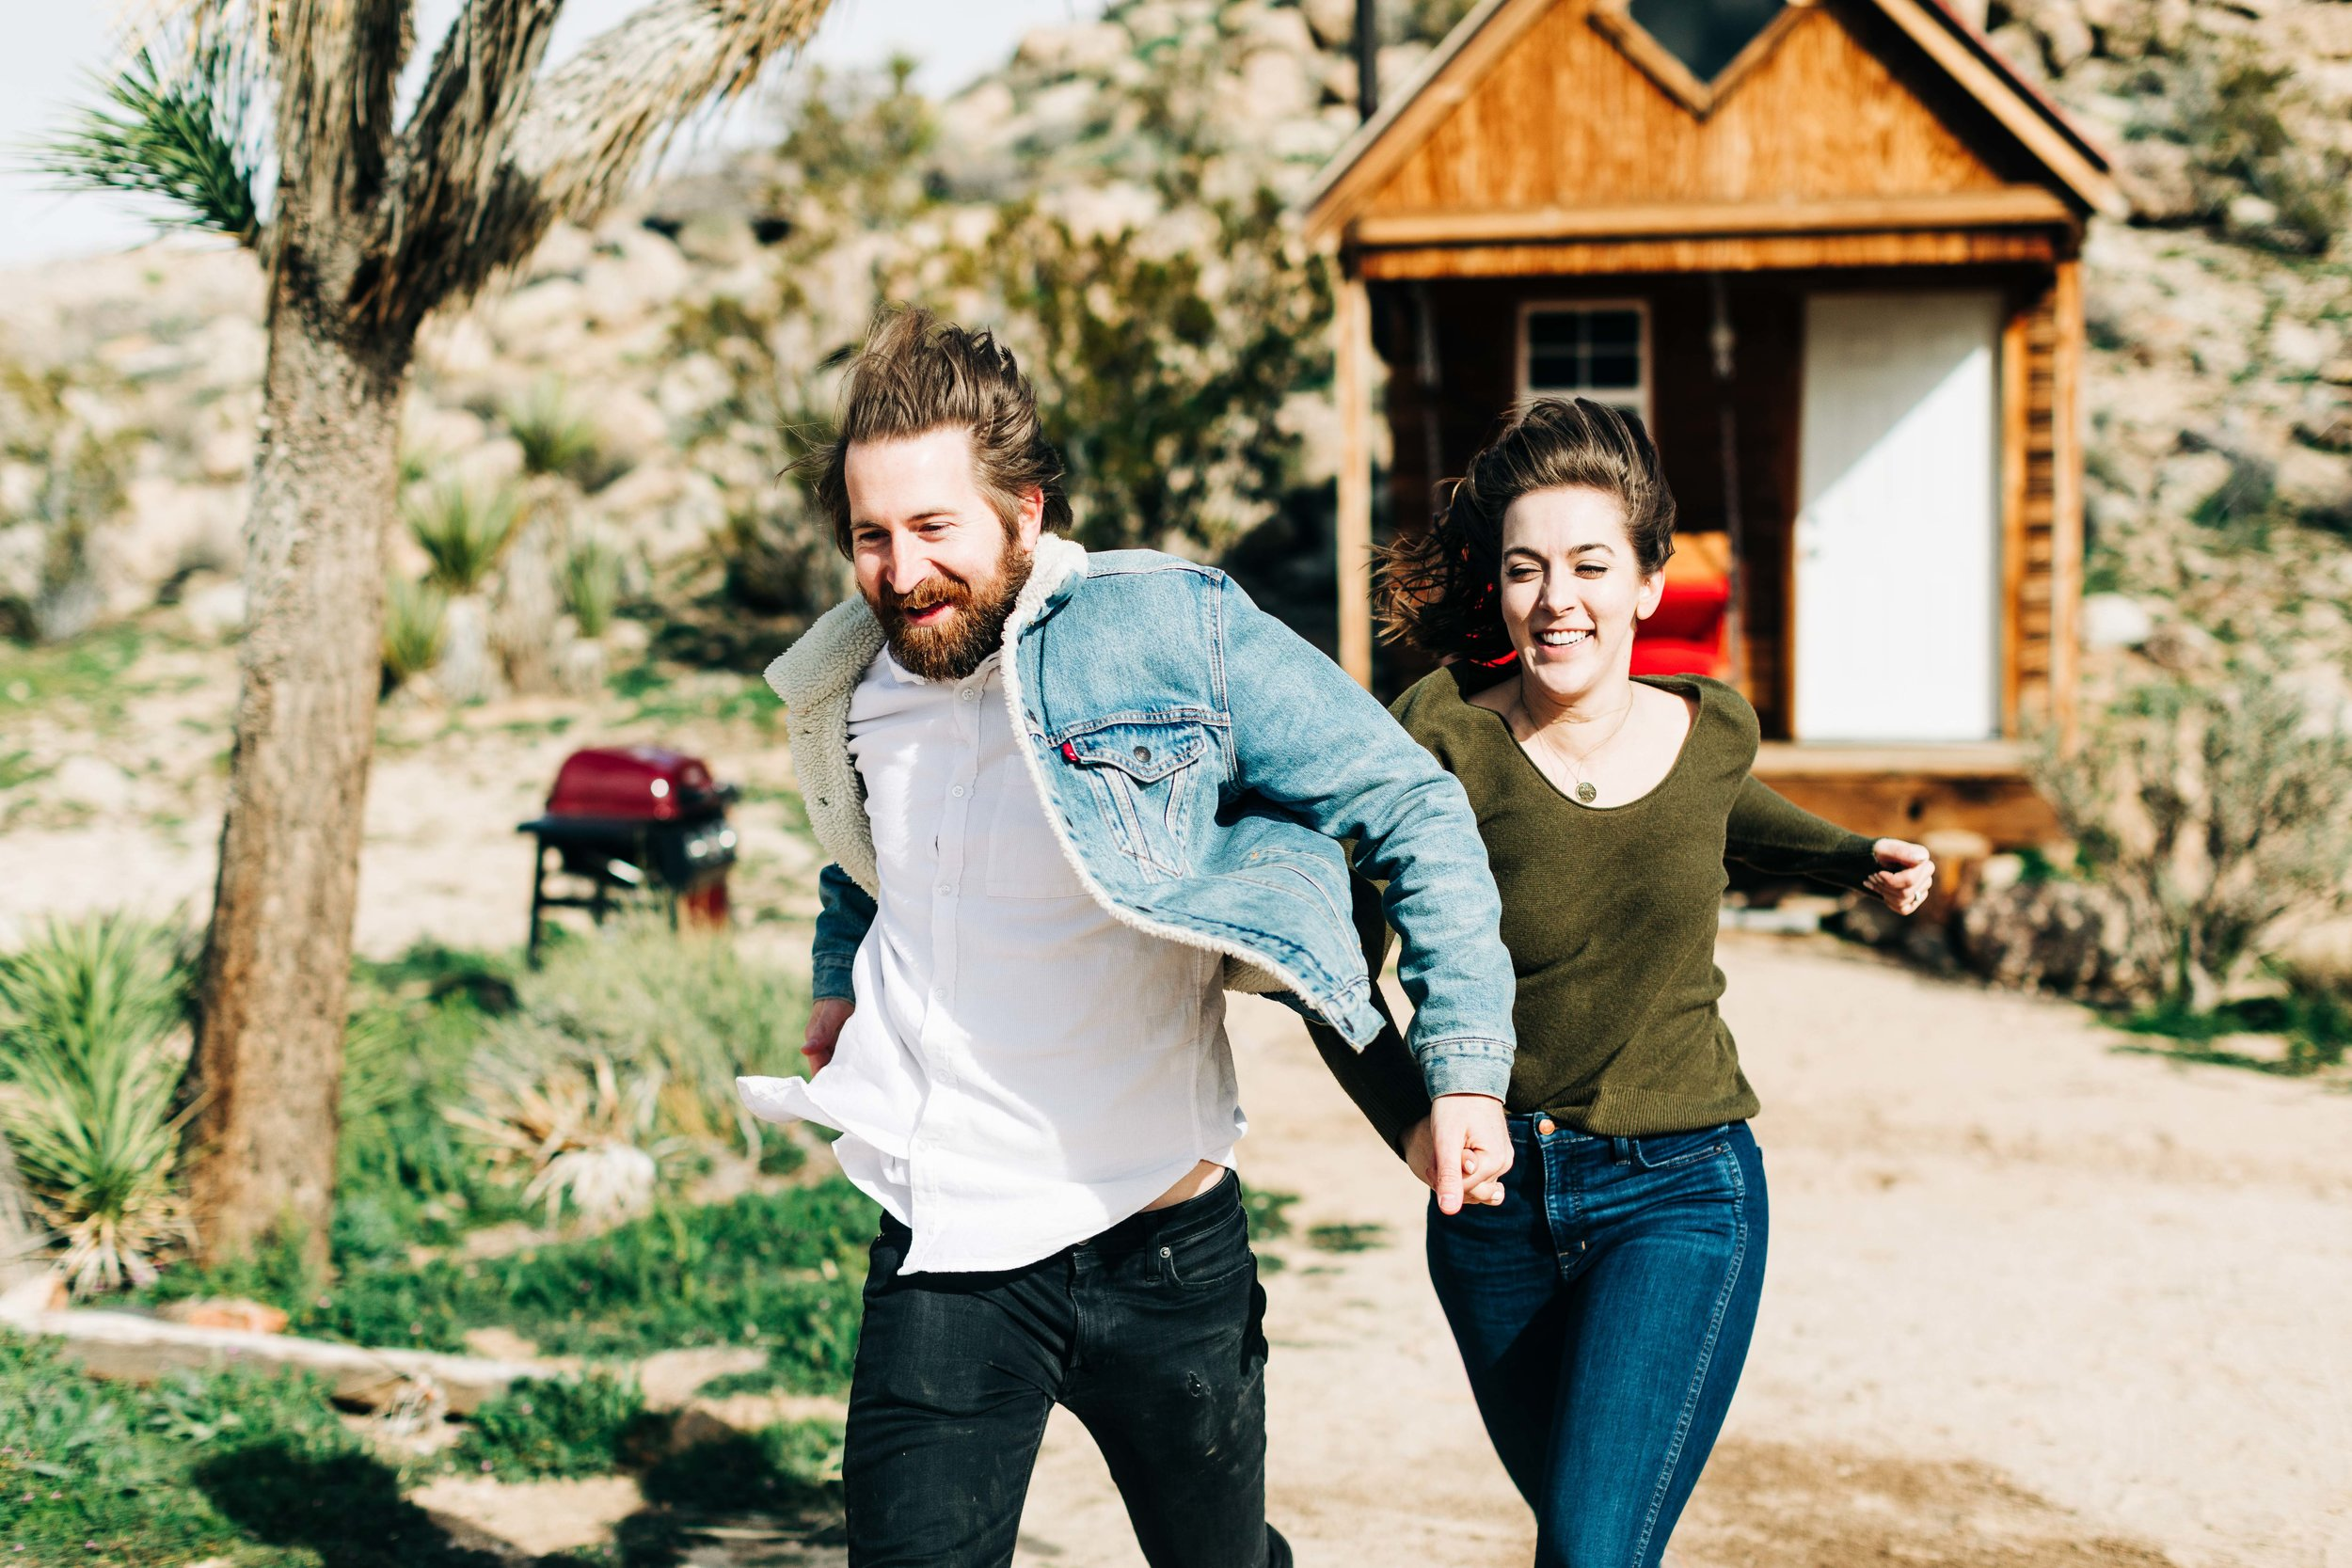 Hayley&Boomer_Joshua-Tree-Engagement-Photos_Tiny-Home_Southern-California-Wedding-Photographer_35